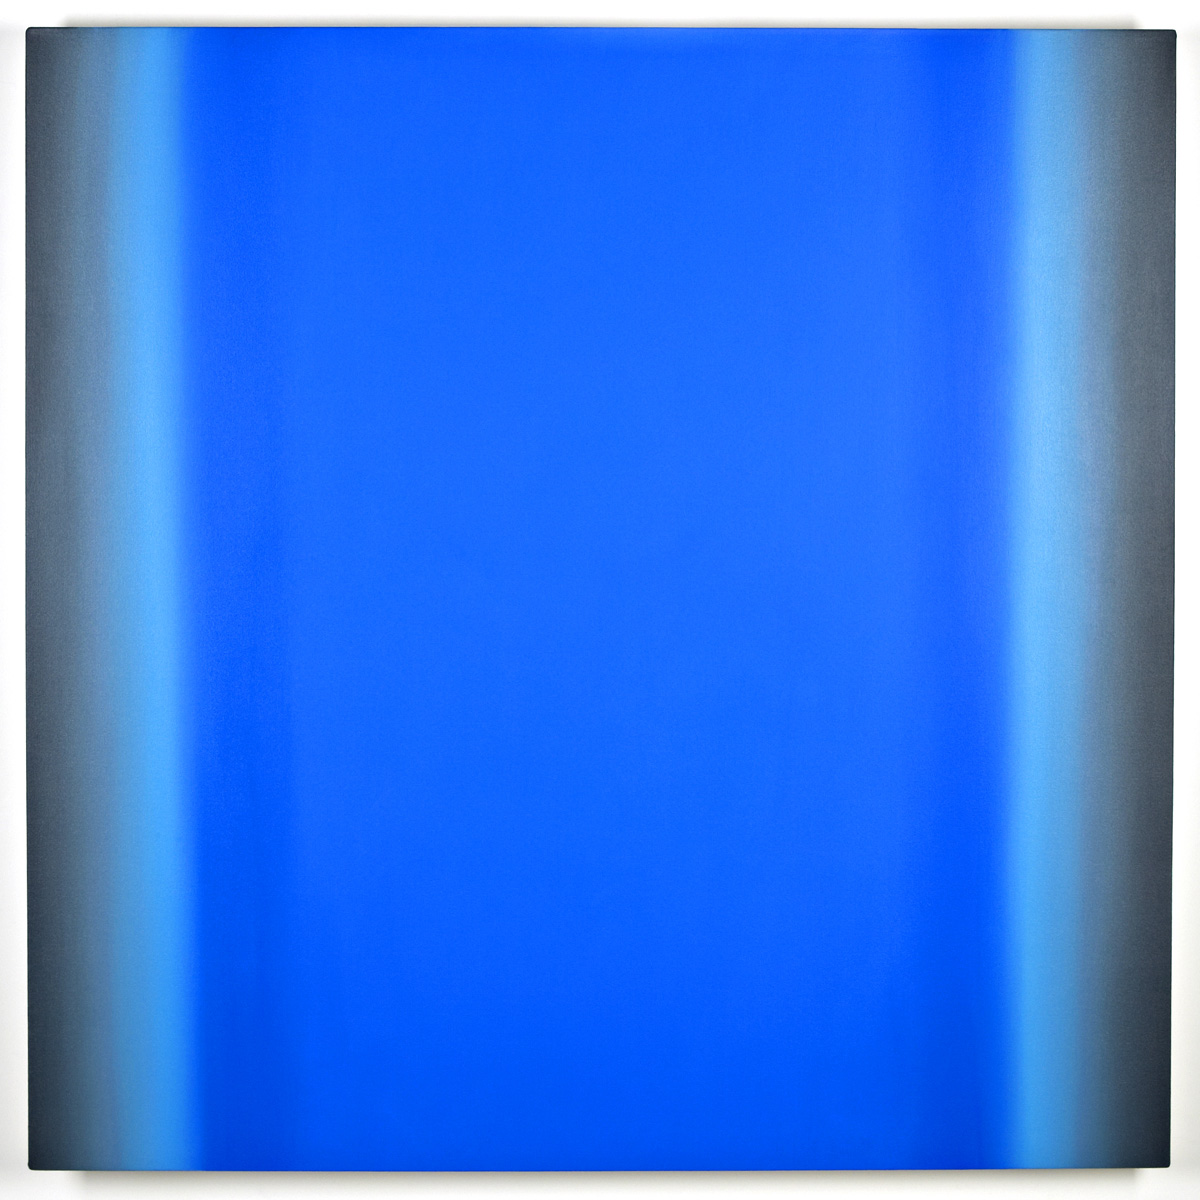 Blue Orange 10-S6060 (Violet Blue Deep), Interplay Series, 2013, oil on canvas on custom beveled stretcher, 60 x 60 in. (153 x 153 cm.)